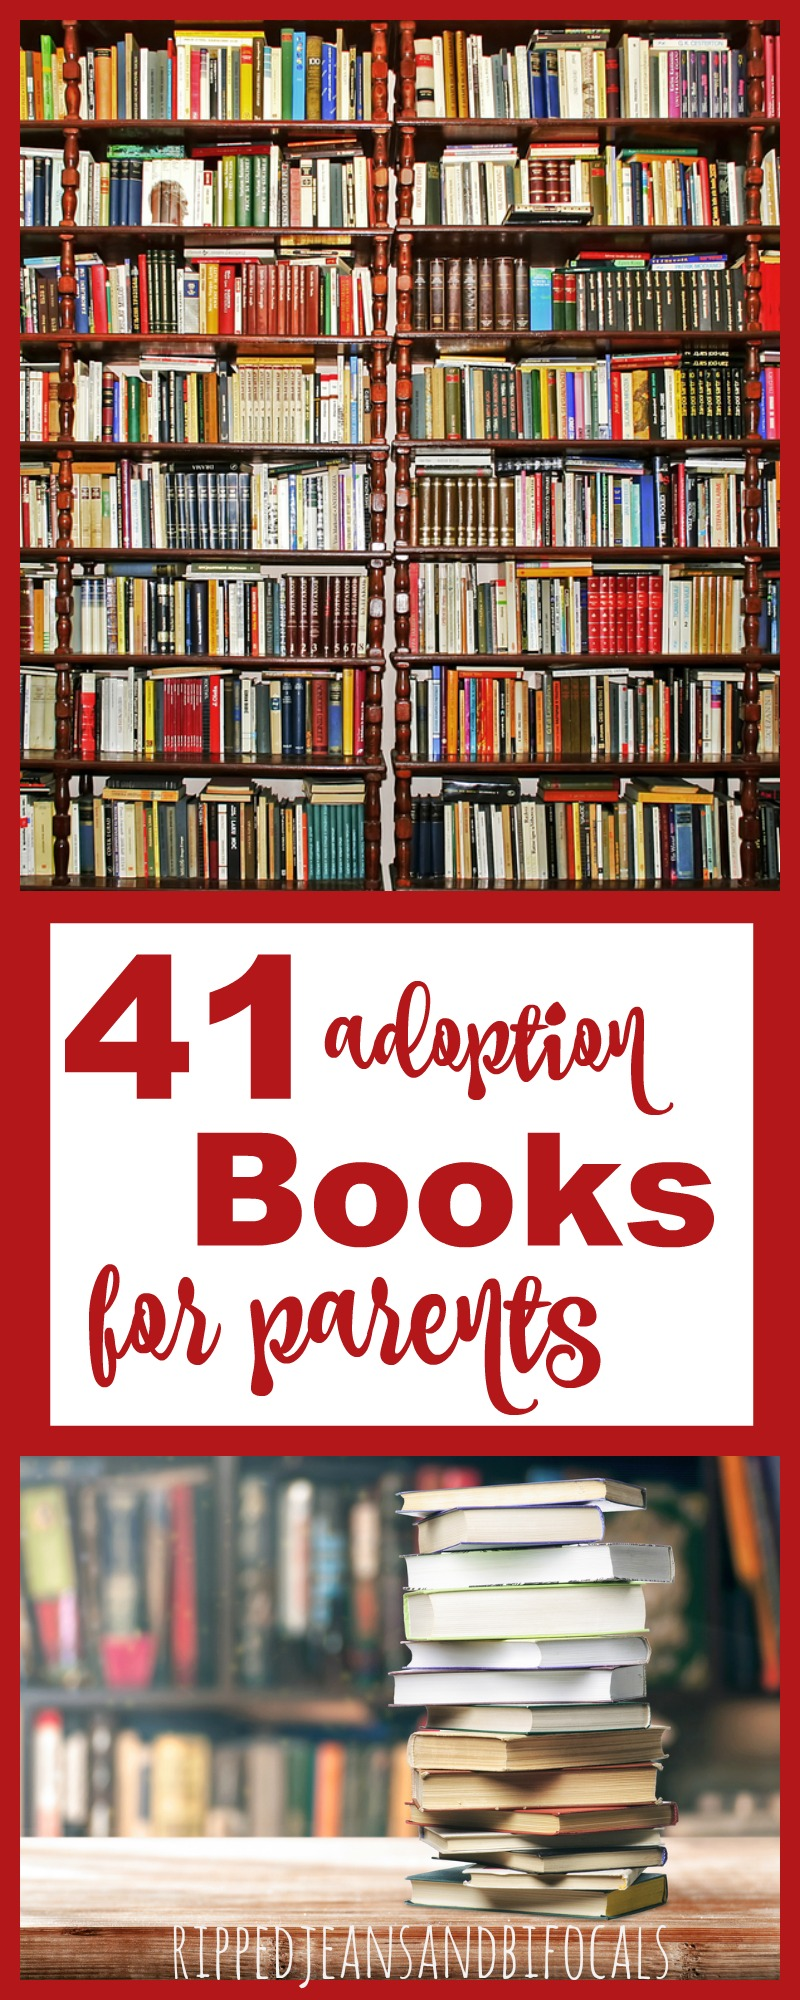 A list of 40 adoption books for parents|Ripped Jeans and Bifocals